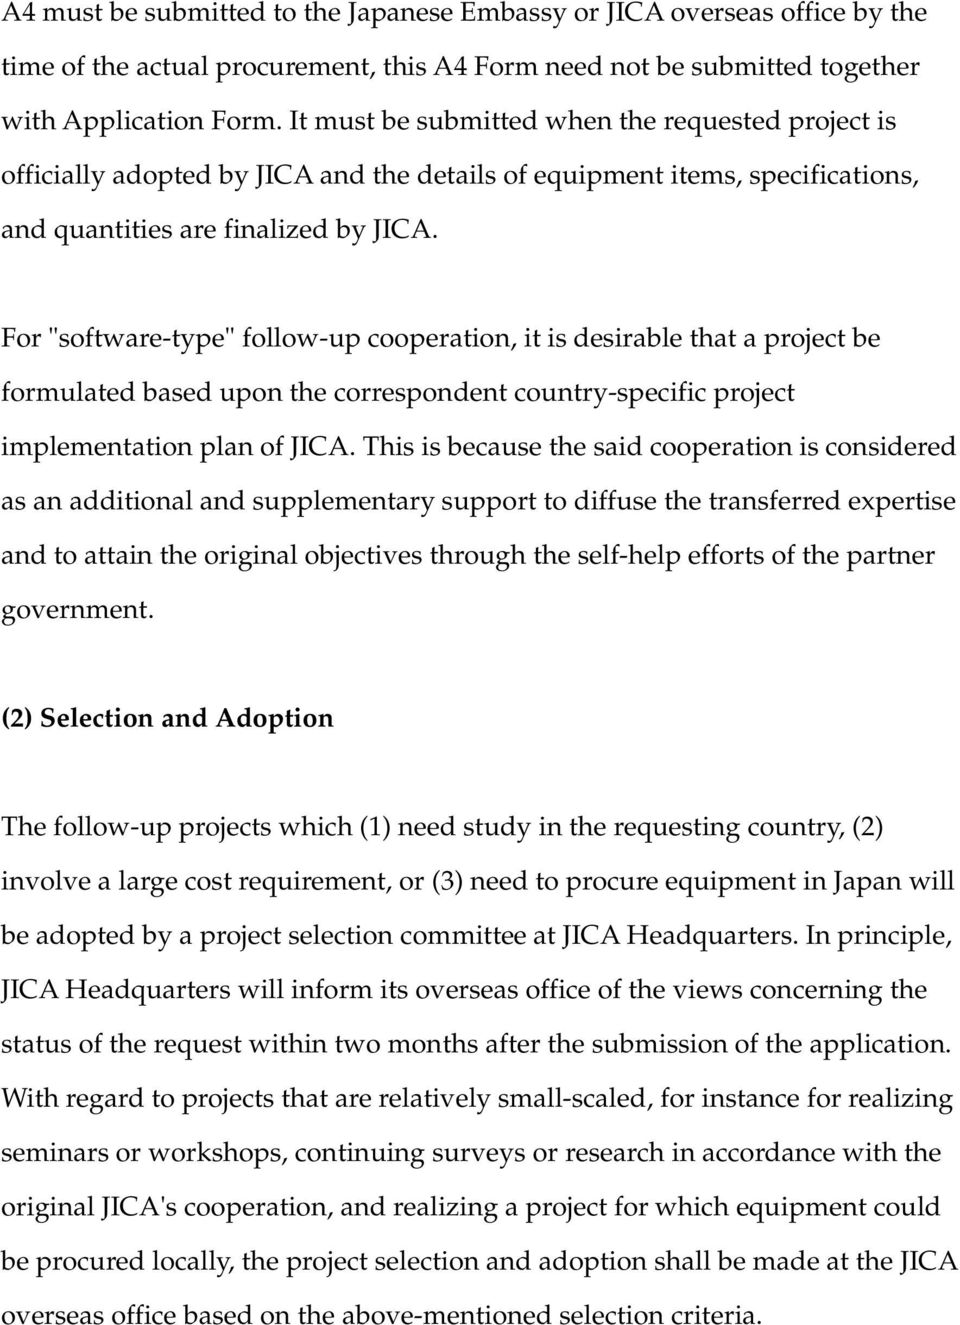 "For ""software-type"" follow-up cooperation, it is desirable that a project be formulated based upon the correspondent country-specific project implementation plan of JICA."